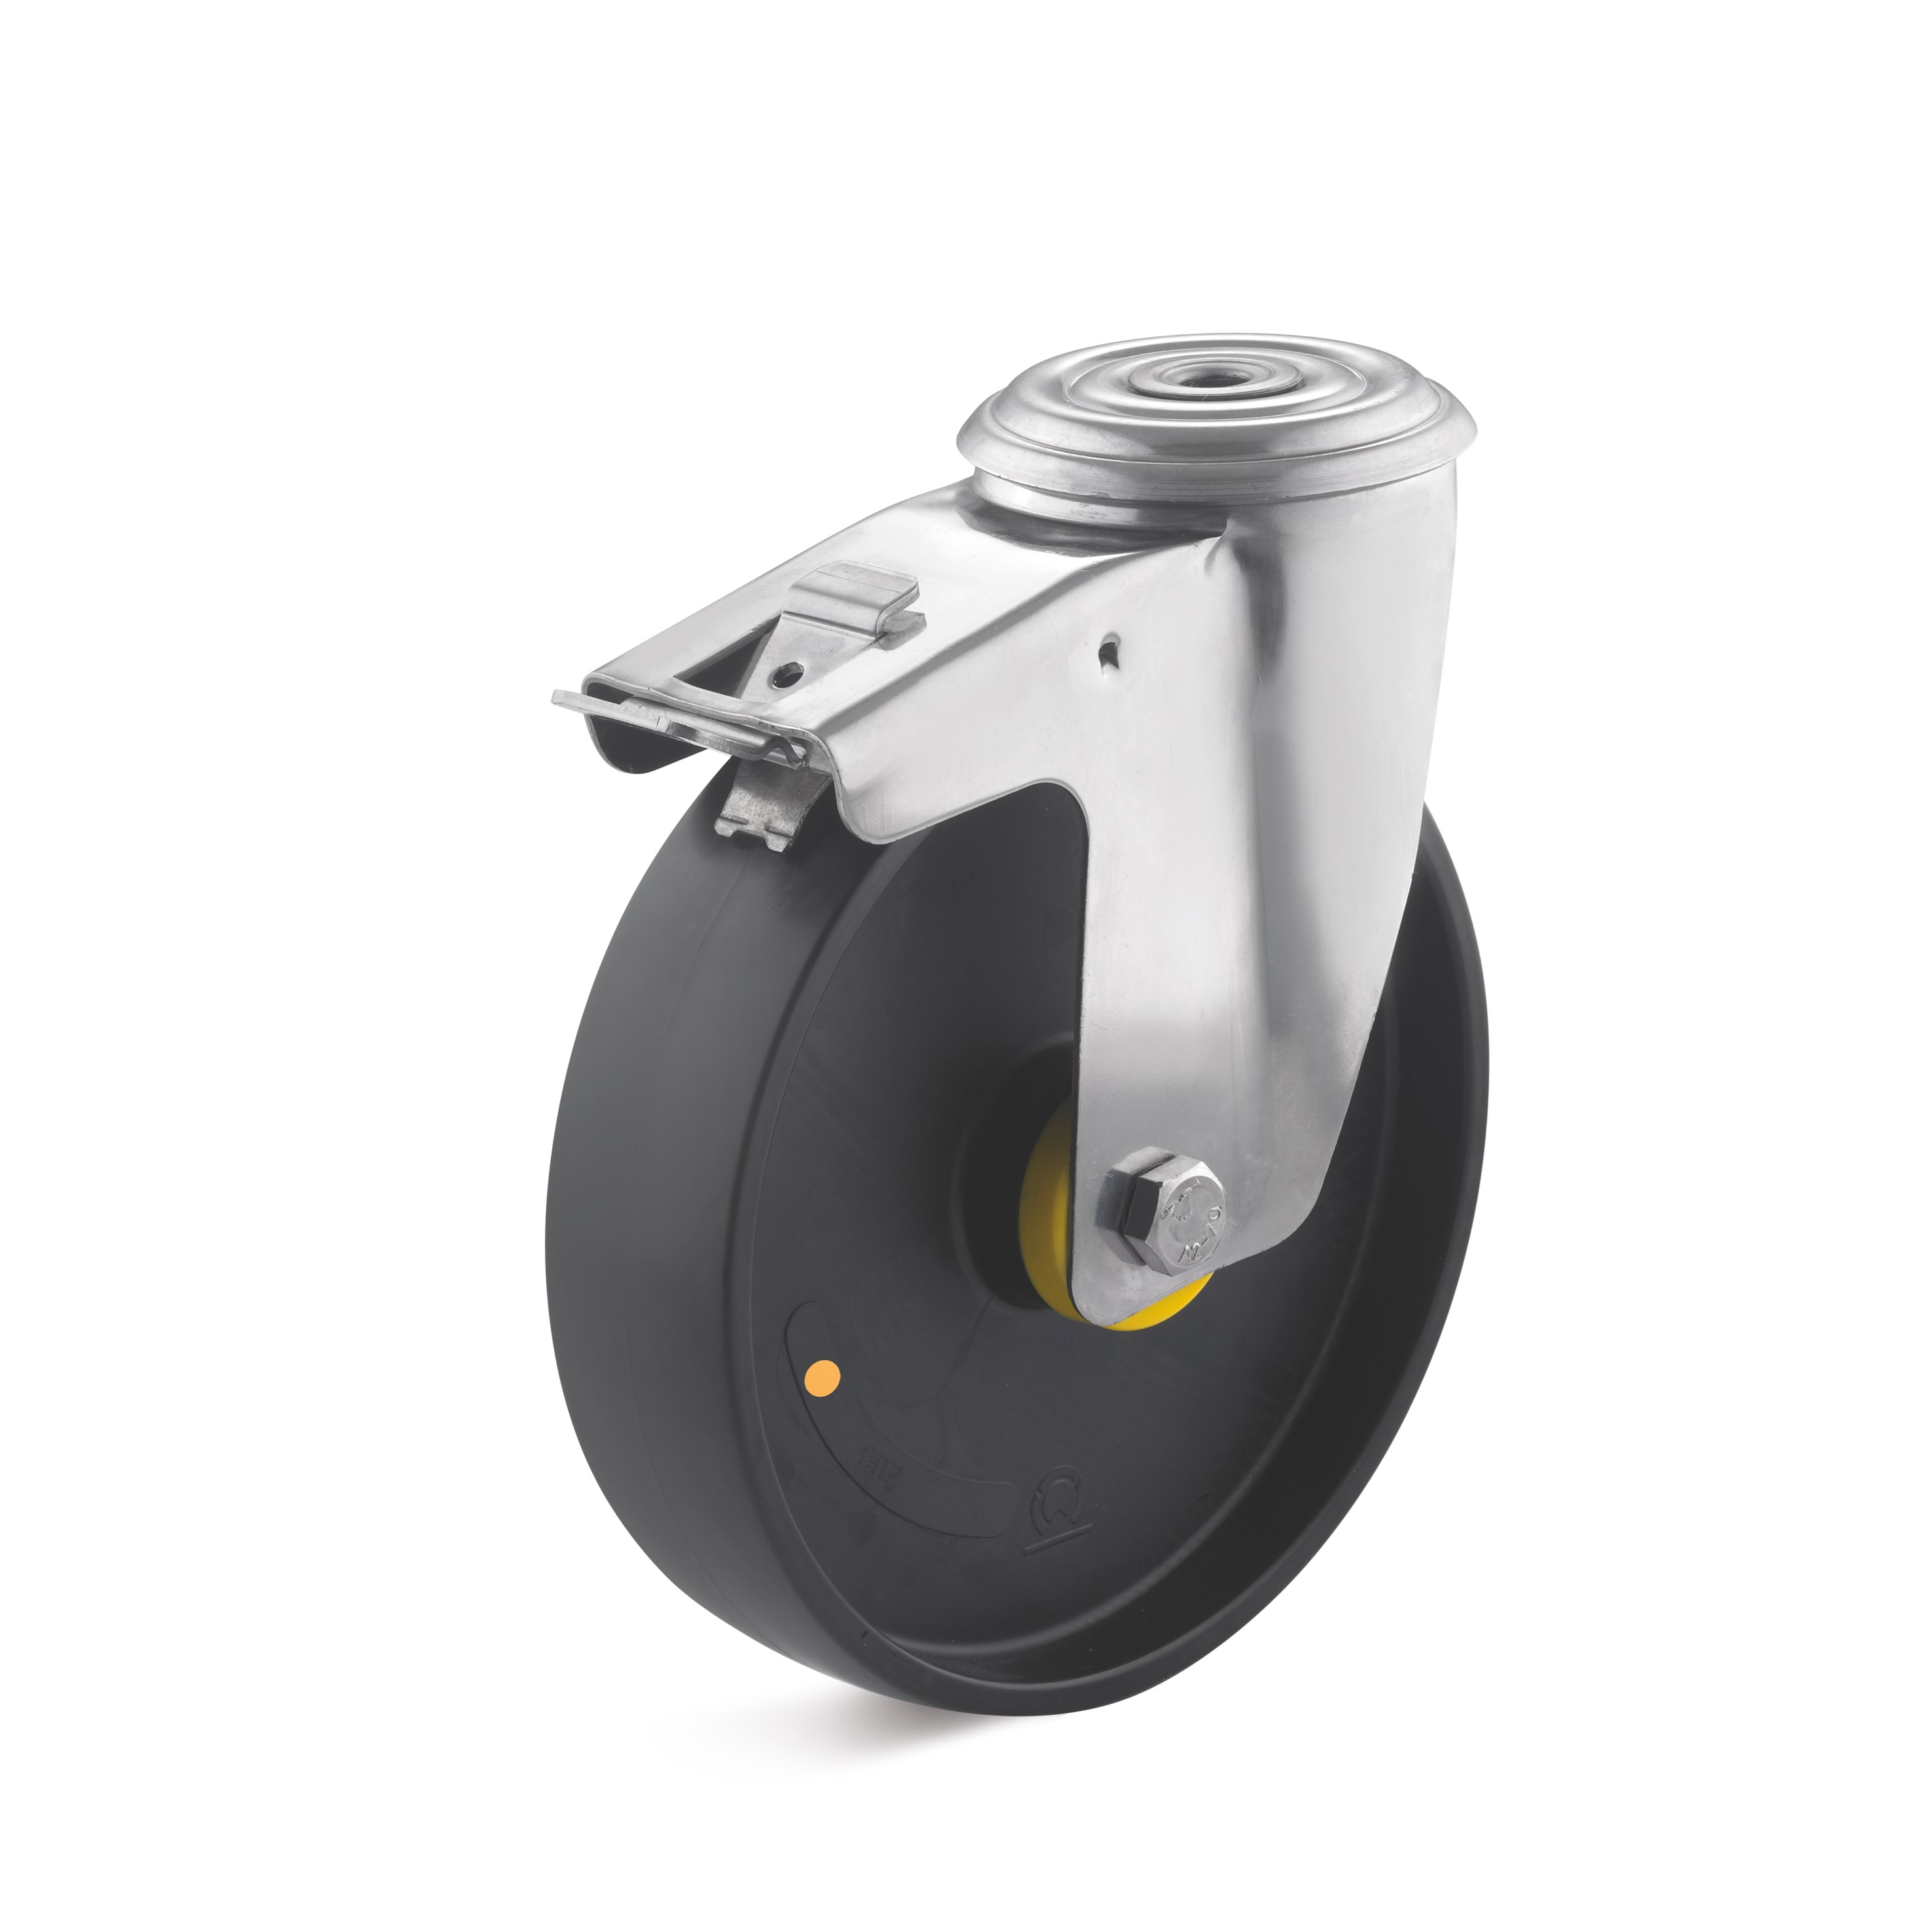 Stainless steel swivel castor with double stop and bolt hole, polyamide wheel